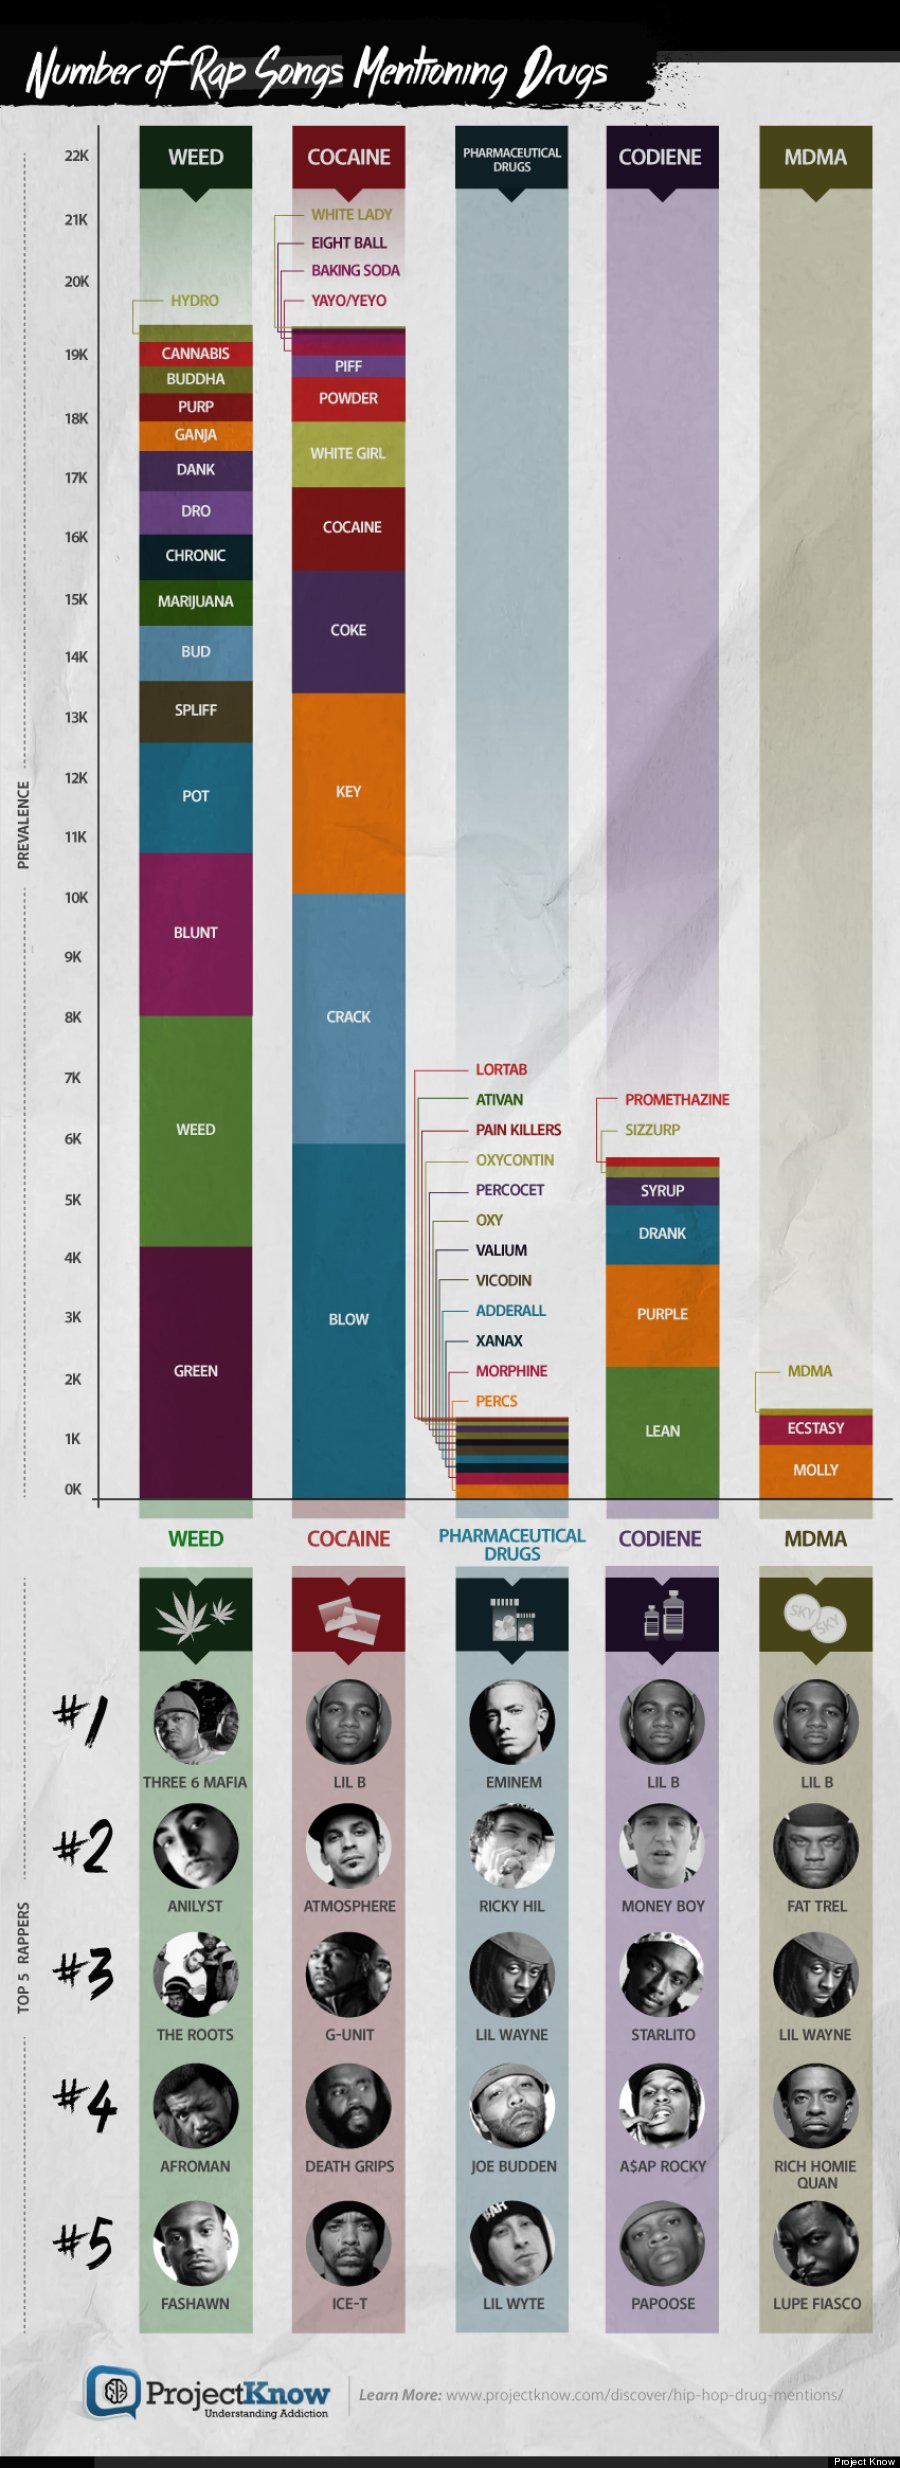 Most Popular Drugs In Hip Hop Lyrics And The Top Rappers Talking About Them infographic imgur